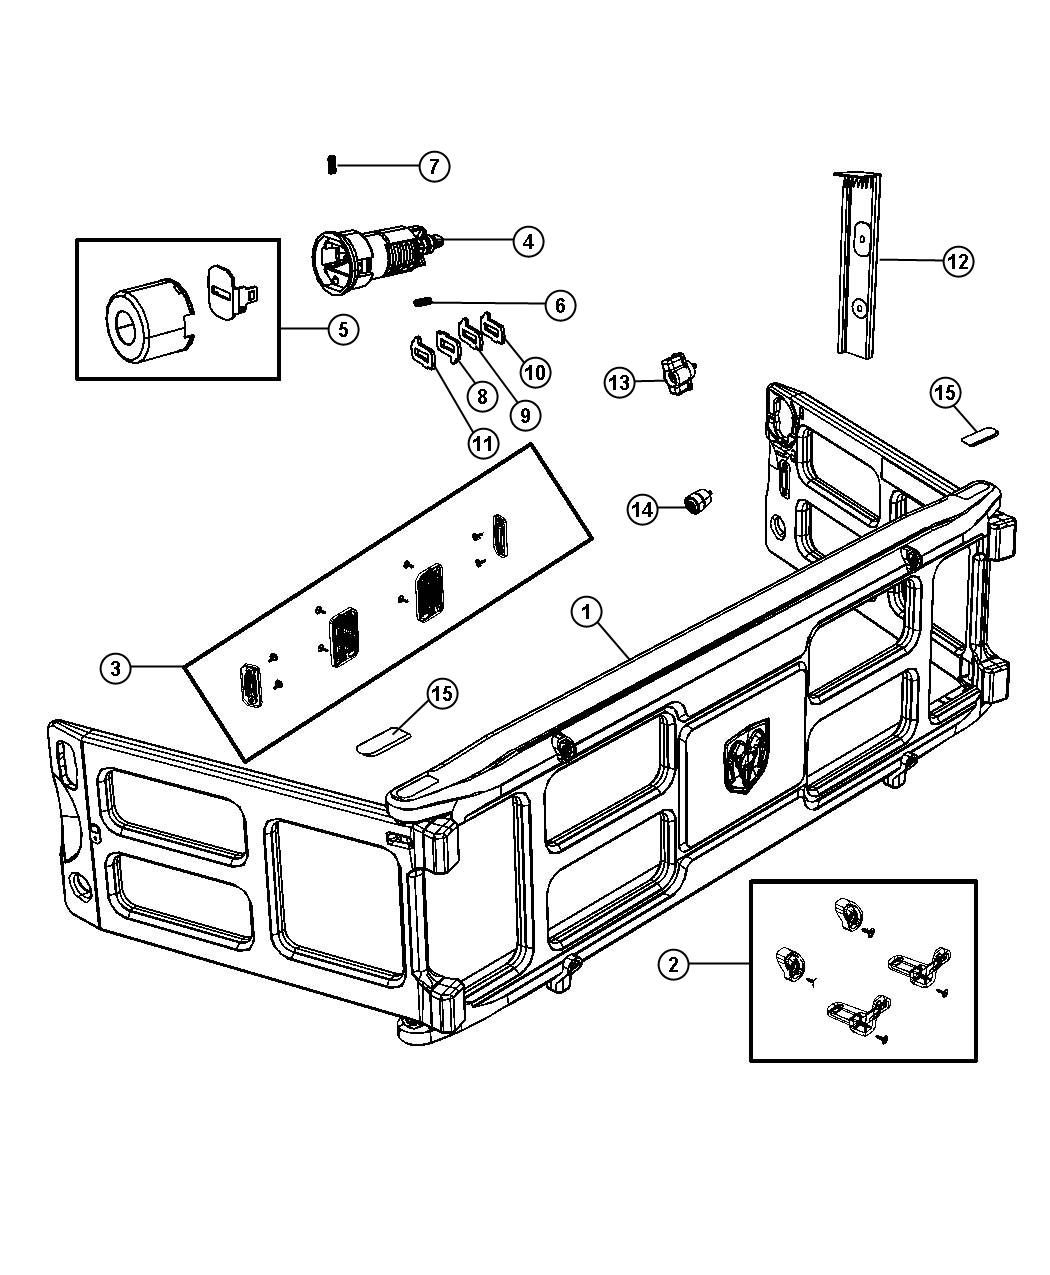 Rambox Bed Extender, Rambox, Free Engine Image For User